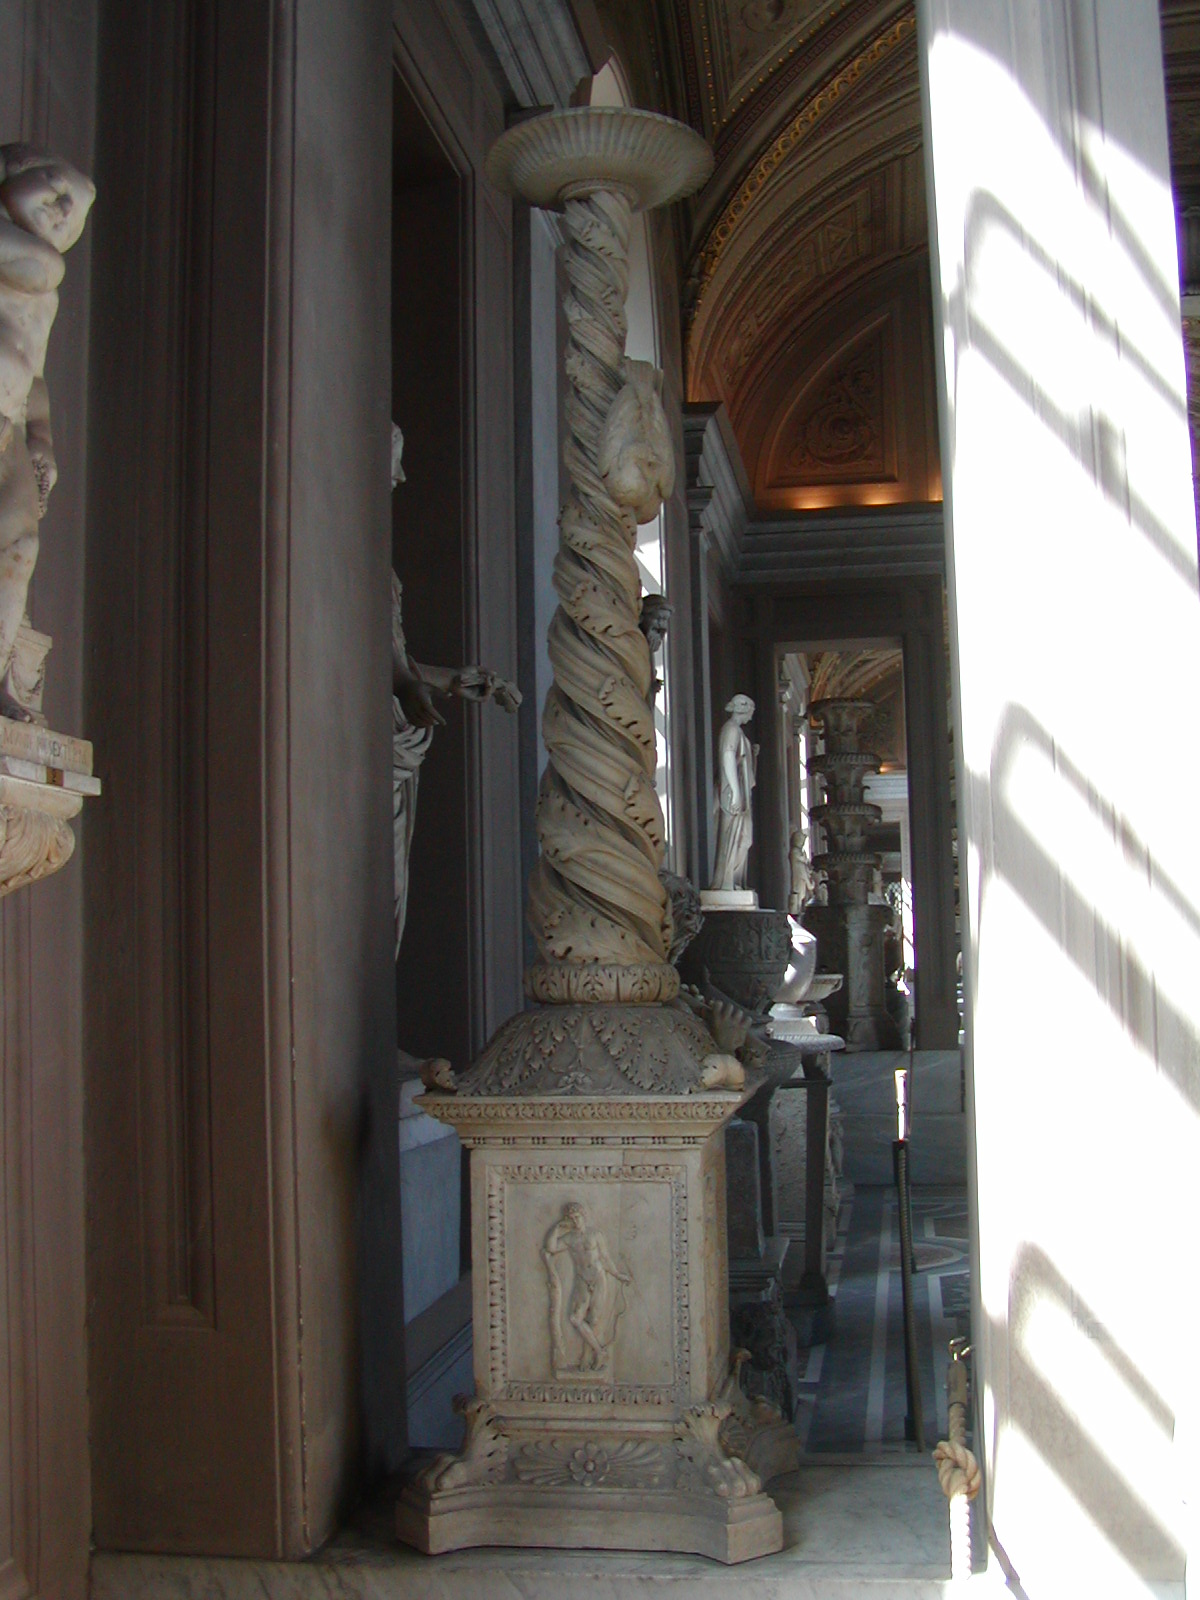 Gallery of the Candelabra - 2002-09-10-150632